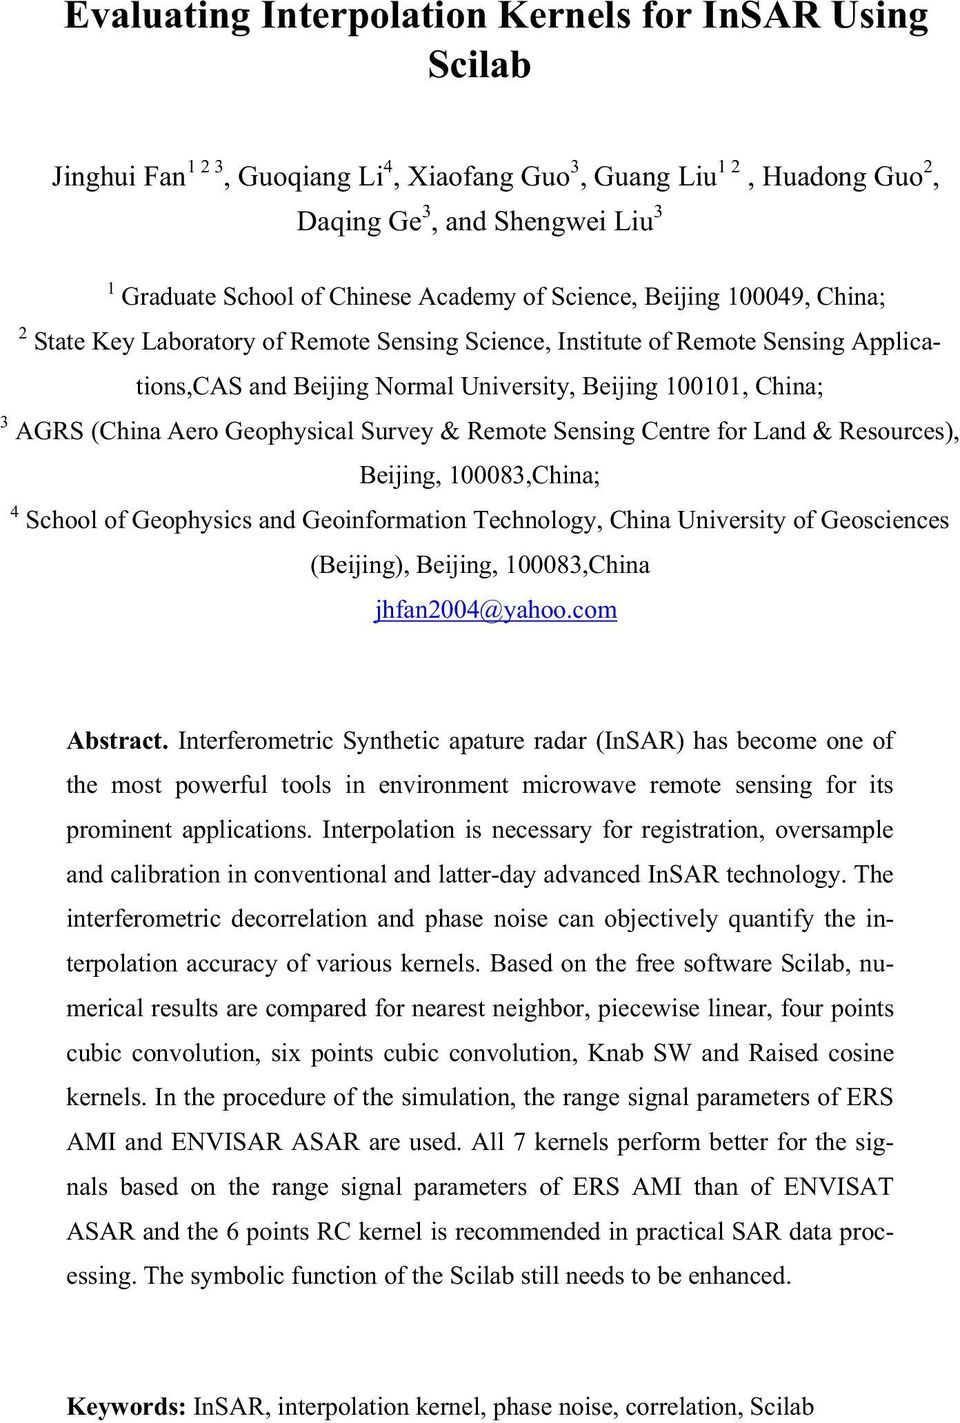 (China Aero Geophysical Survey & Remote Sensing Centre for Land & Resources), Beijing, 100083,China; 4 School of Geophysics and Geoinformation Technology, China University of Geosciences (Beijing),